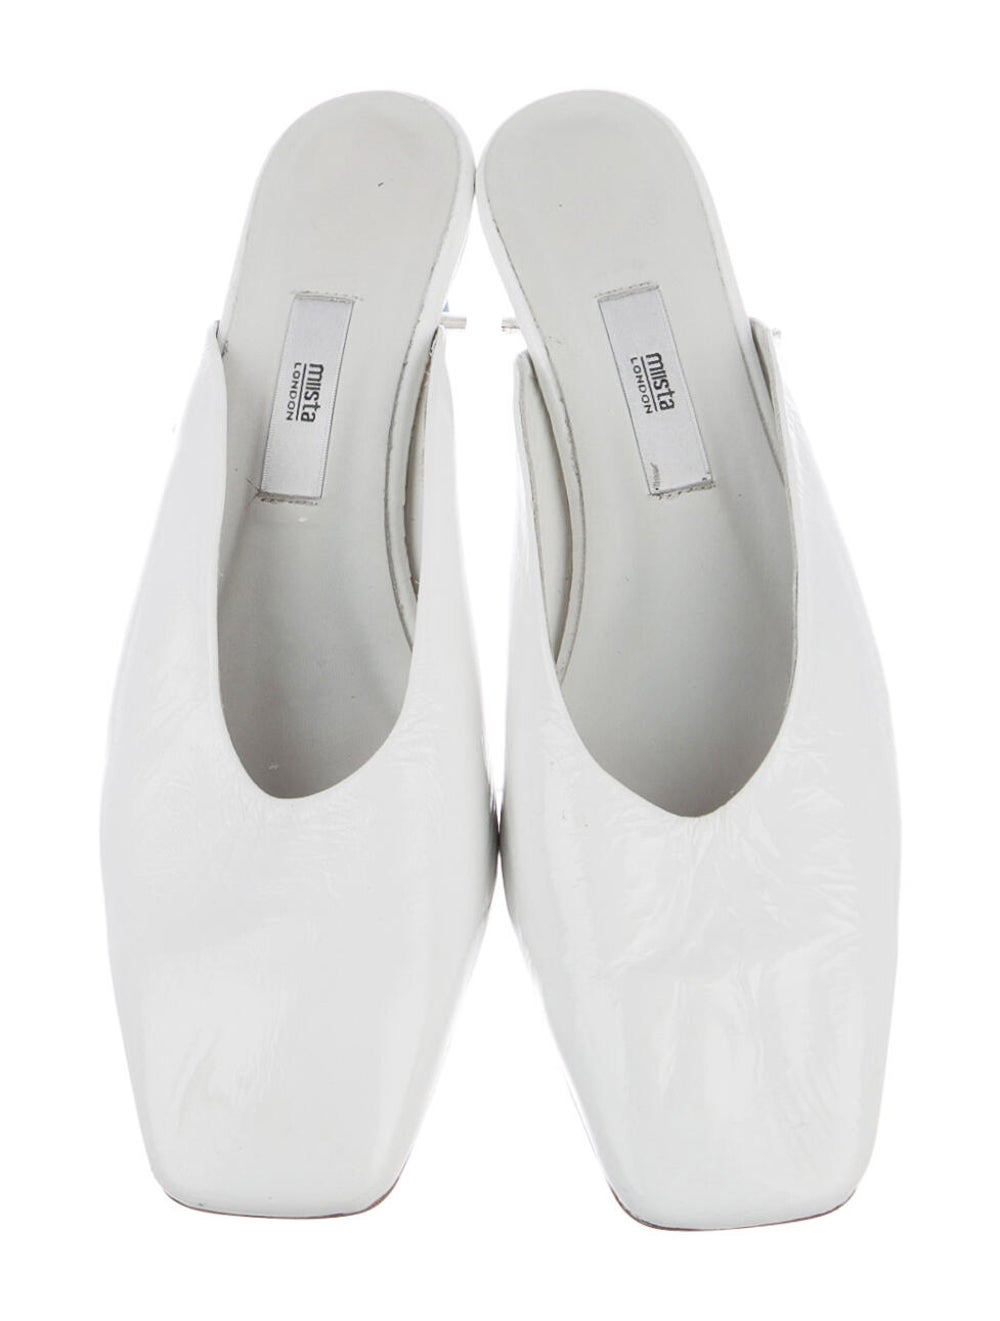 Miista Patent Leather Mules White - image 3